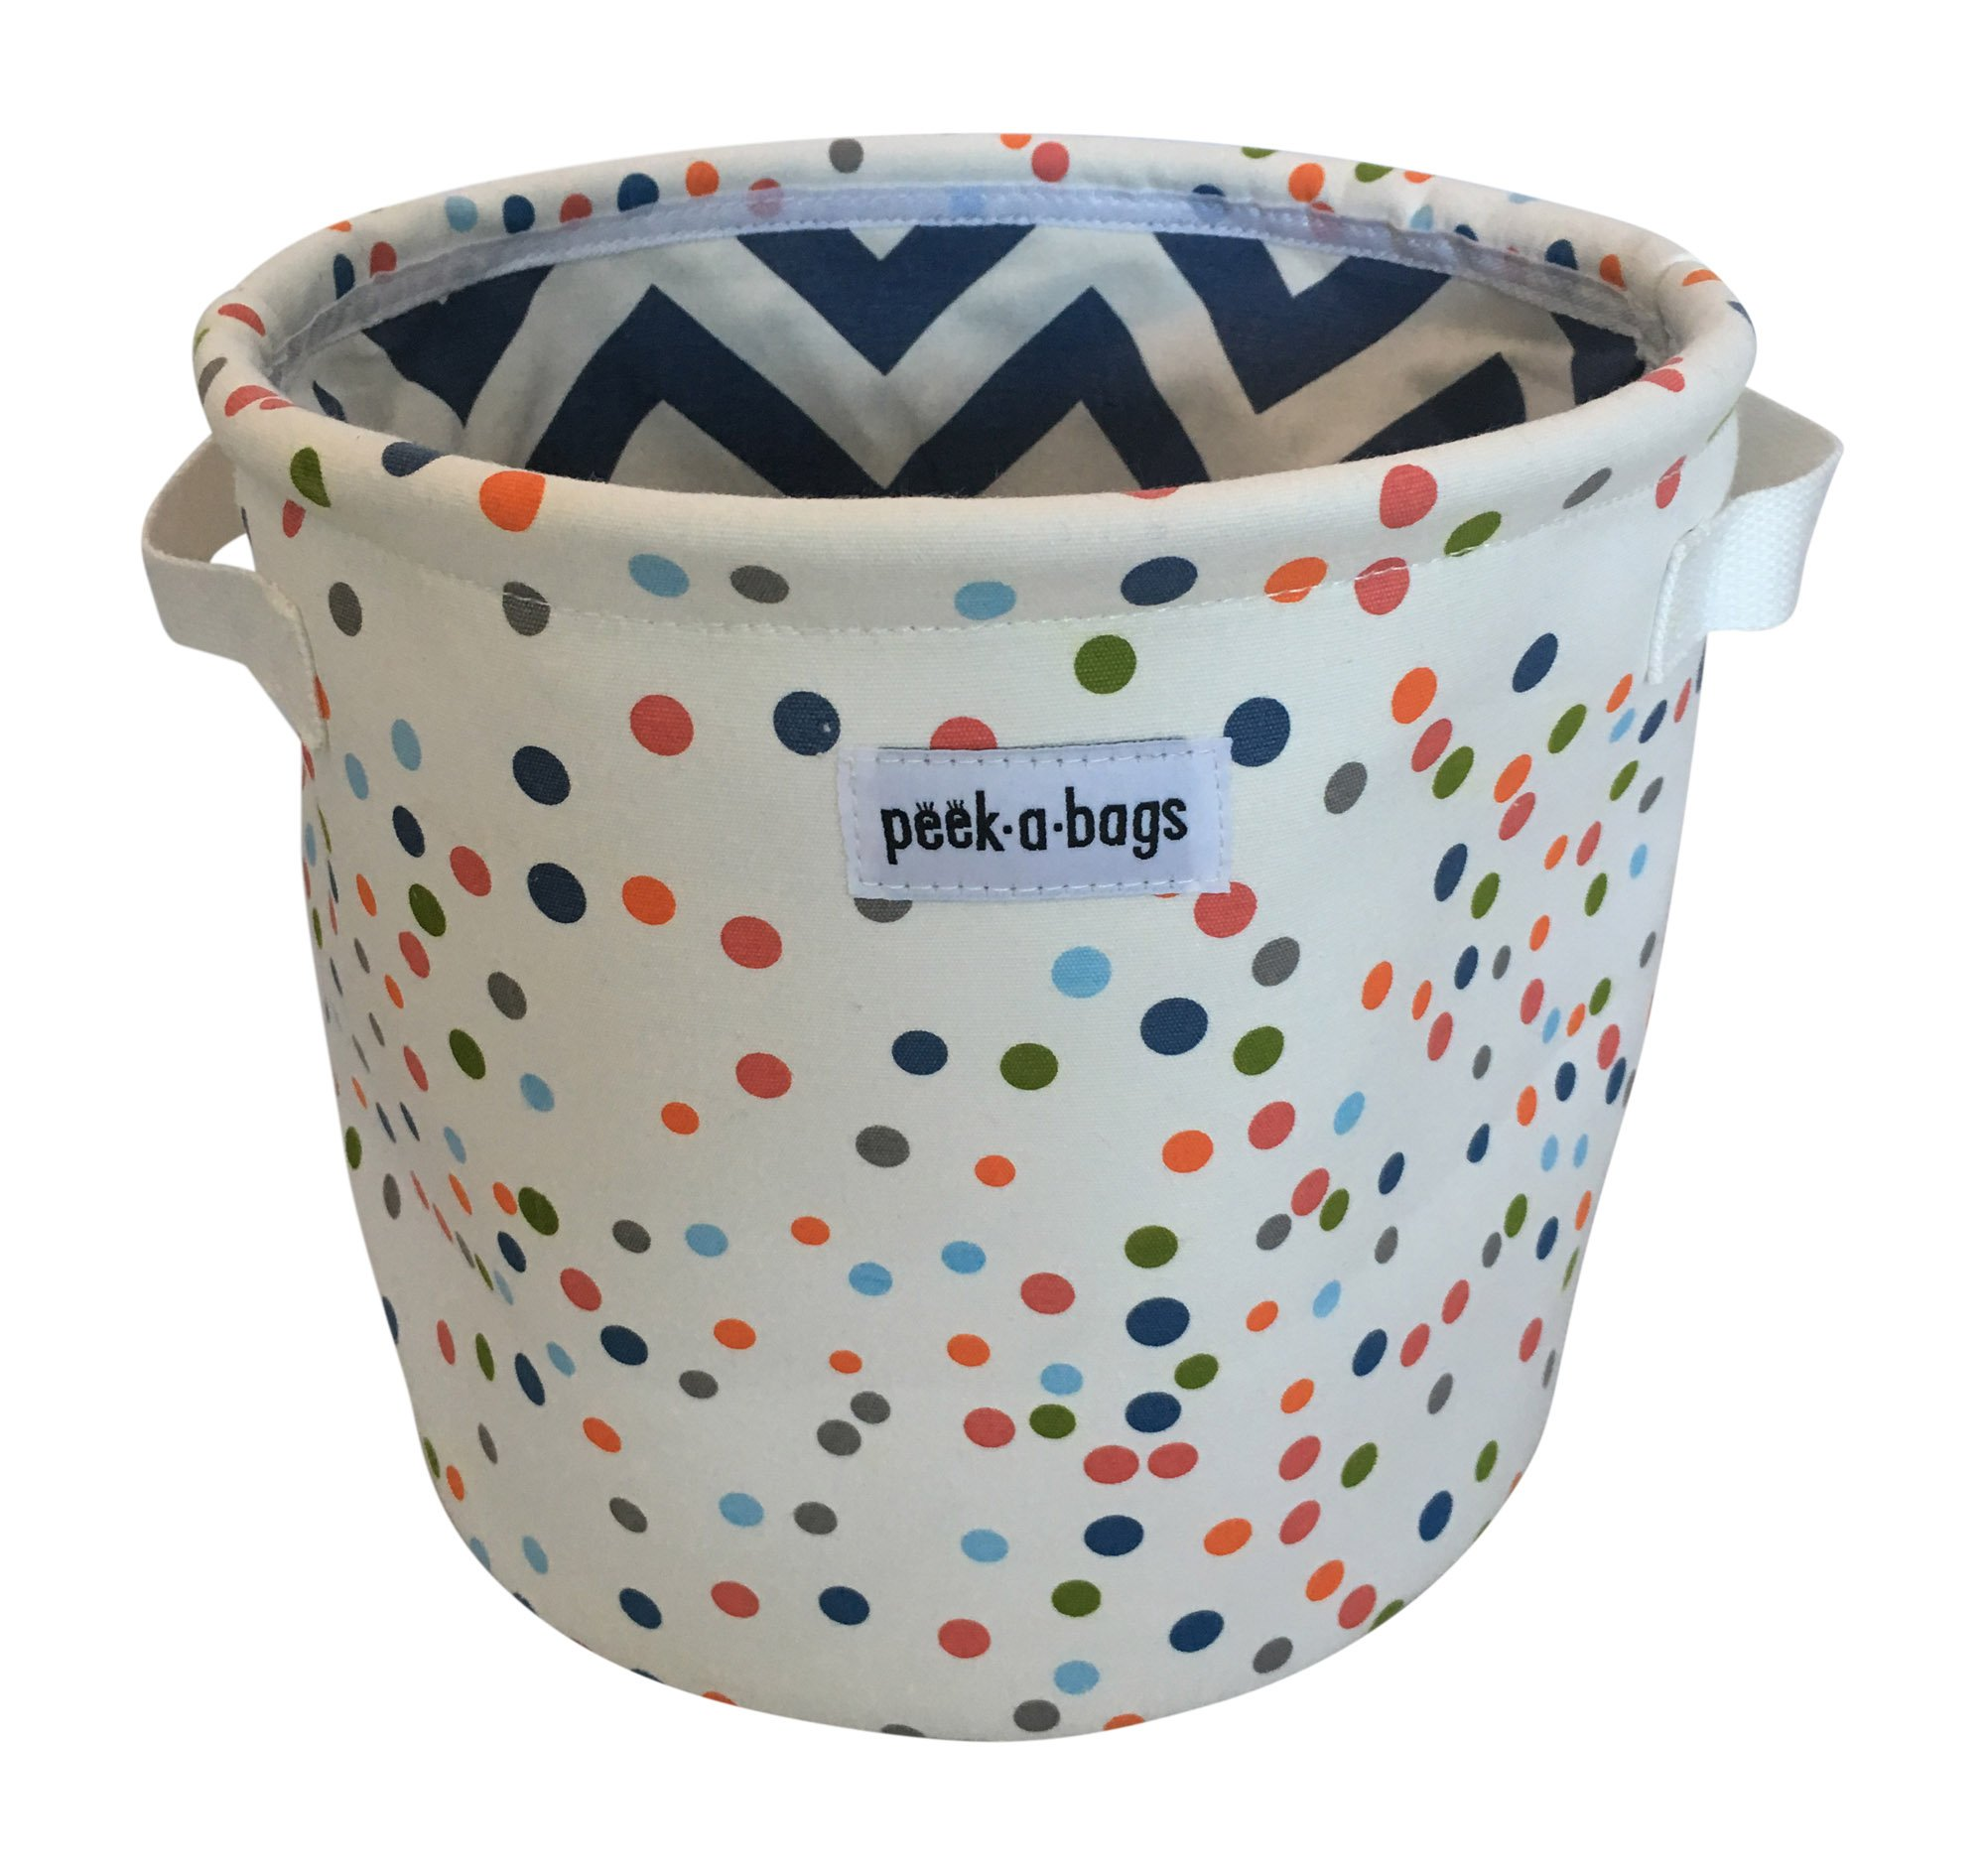 Peek-a-Bags Canvas Toy Storage Bin Perfect for Books, Small Stuffed Animals, Nursery storage organization & Organization of Playrooms, Shelves, Kid's rooms & Closets. (Multi-colored Dots)